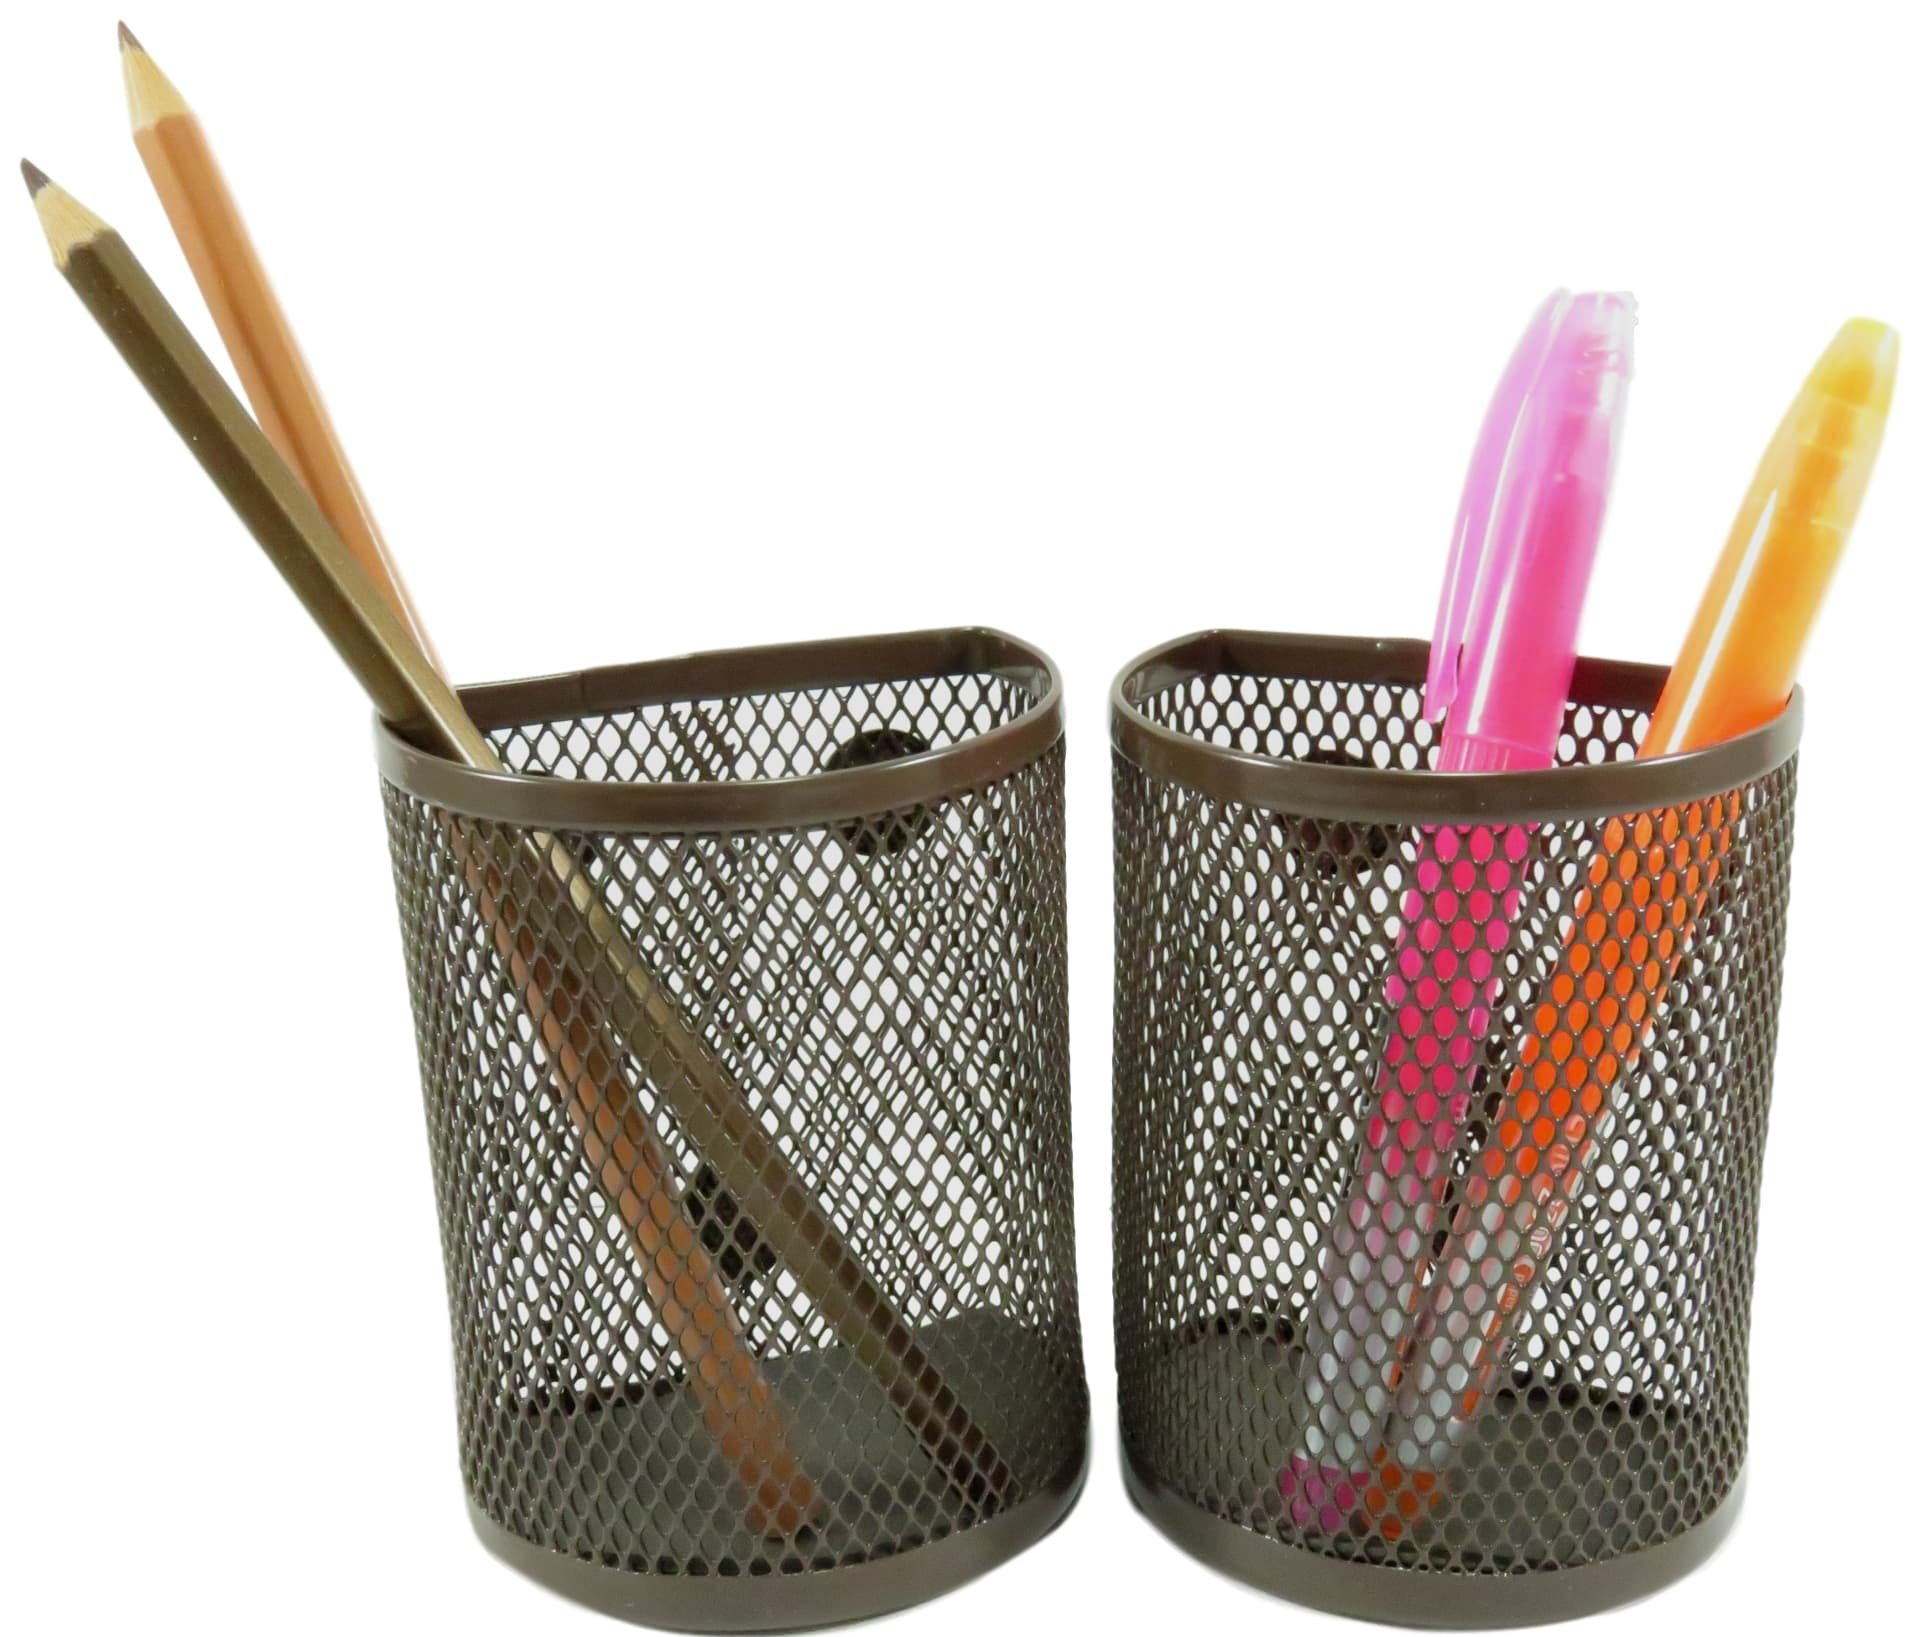 Half Moon Mesh Wire Pen Pencil Holder Magnetic 3.7 x 2.8 Brown (Set of 2)